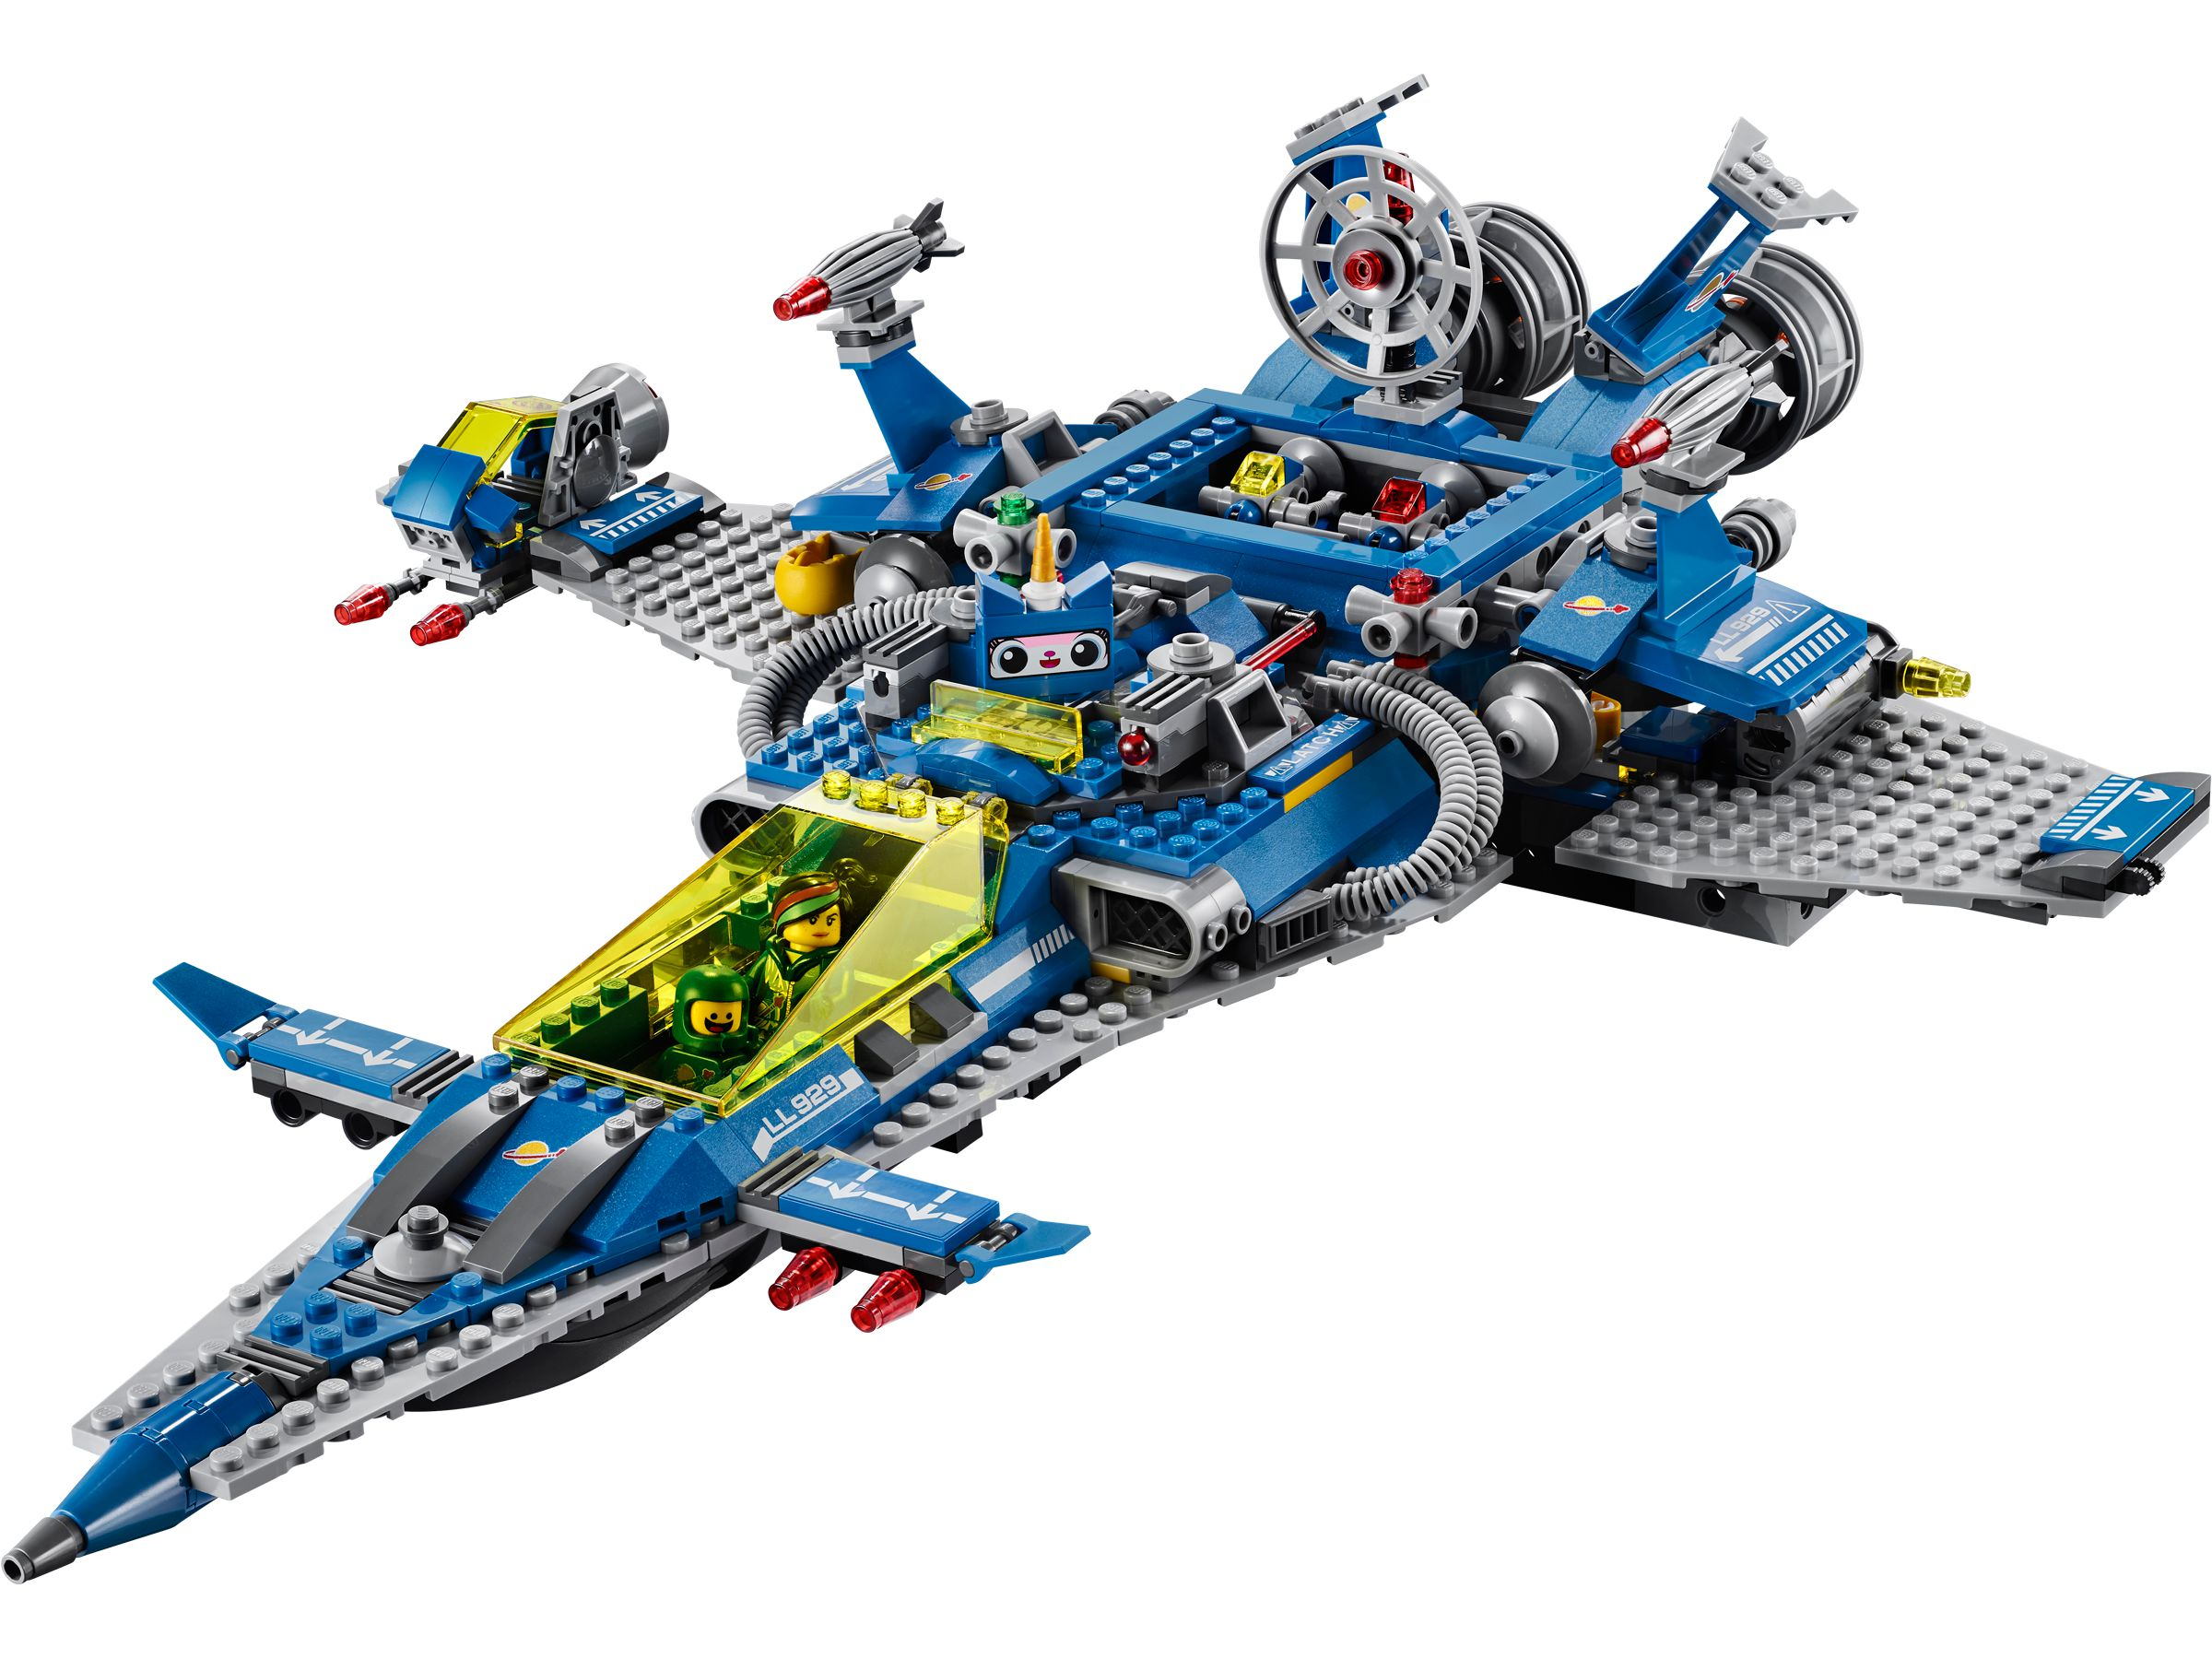 lego instructions for combining 2 sets